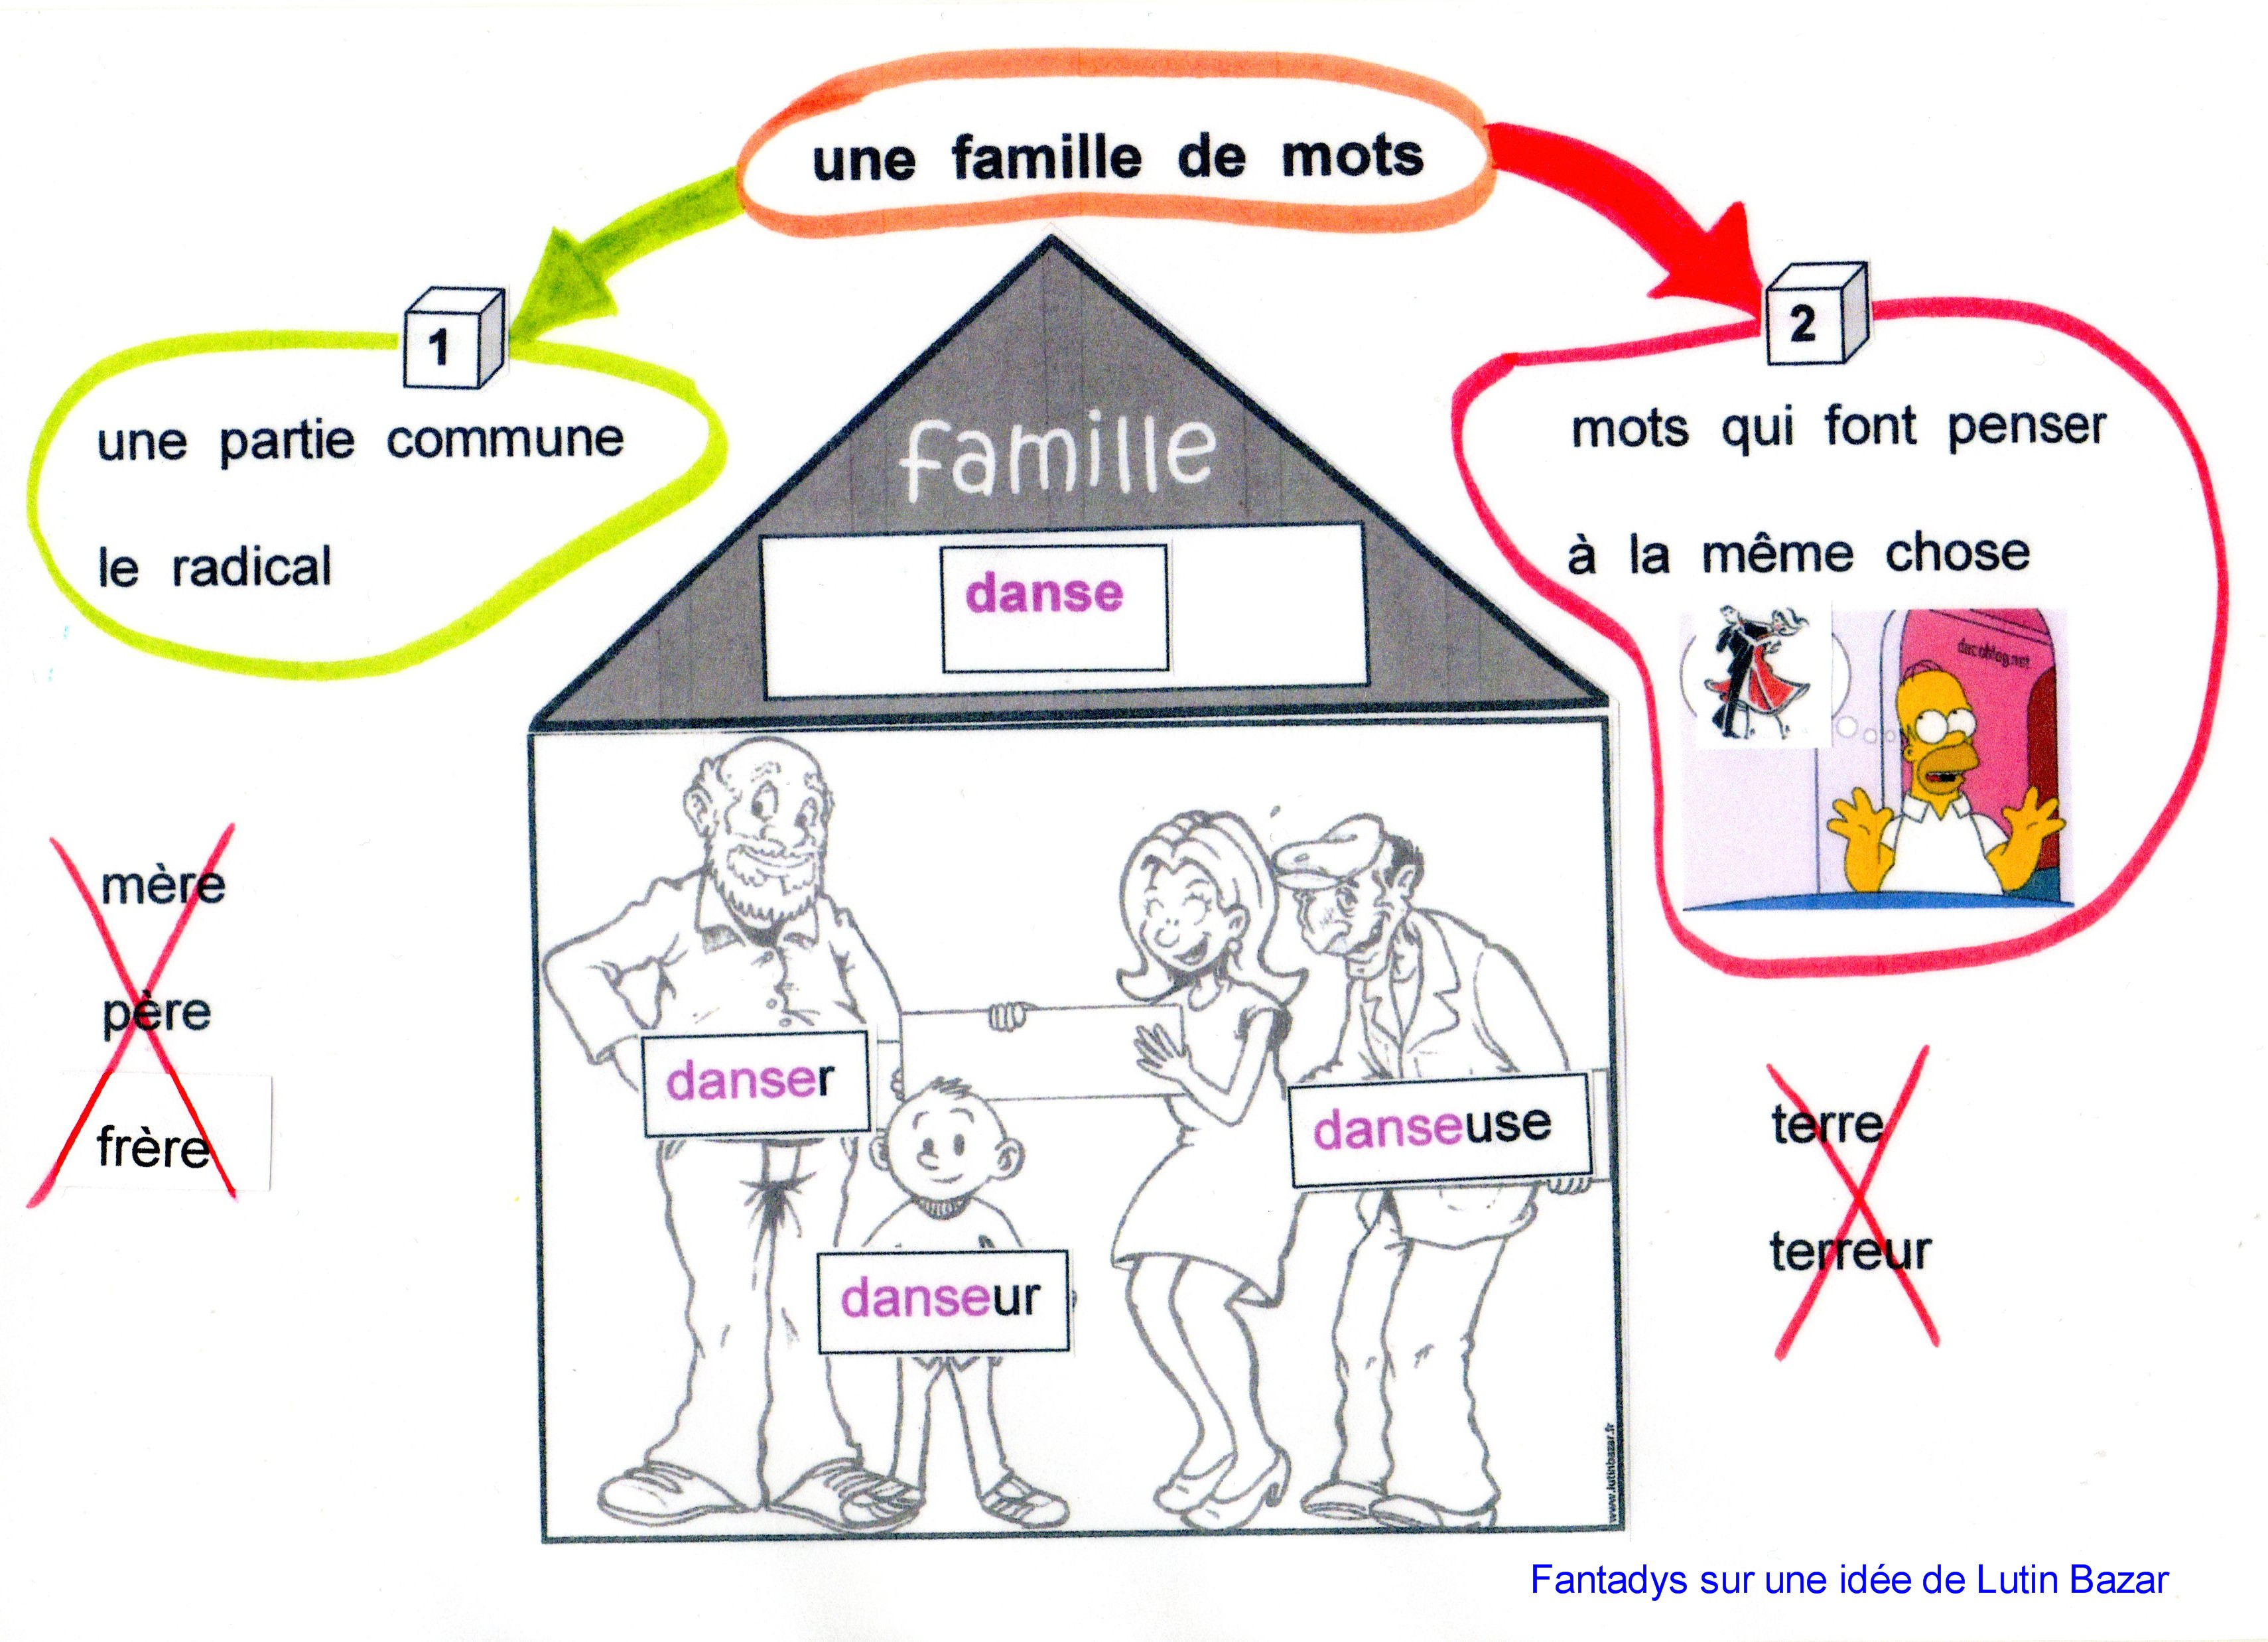 https://fantadys.files.wordpress.com/2013/07/famille-aide.jpg